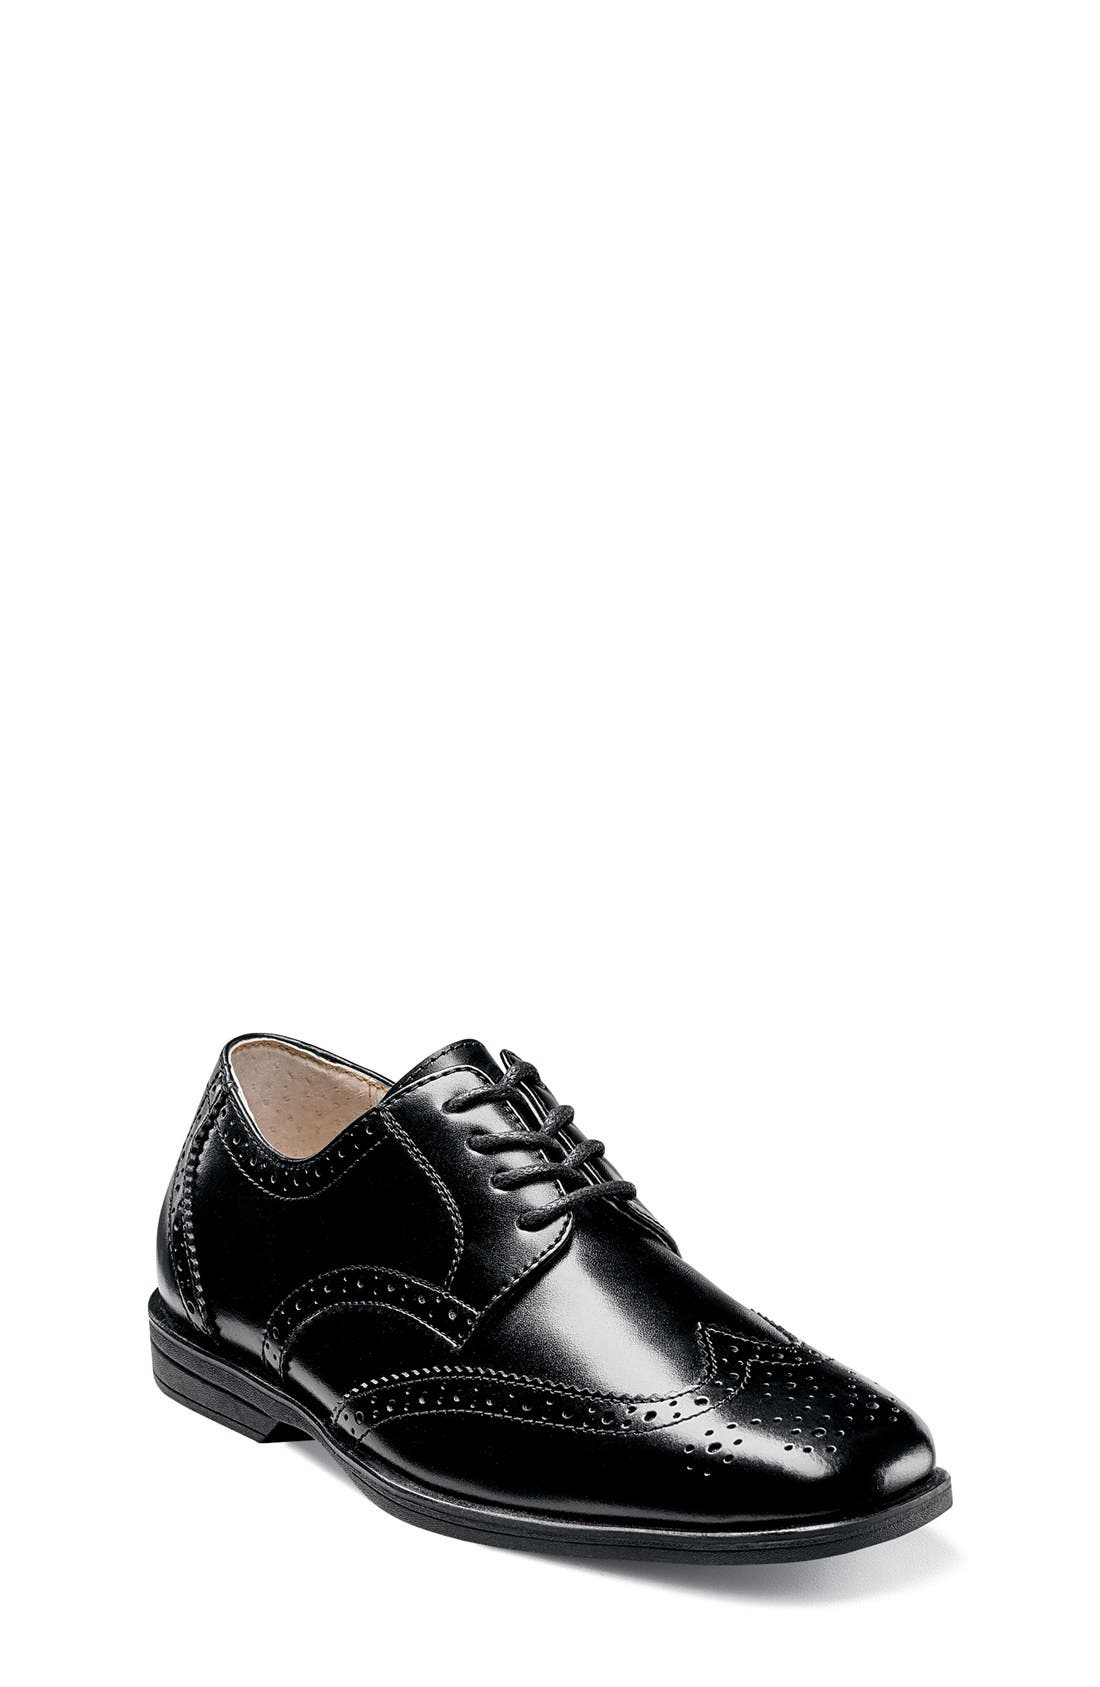 FLORSHEIM, 'Reveal' Wingtip Oxford, Main thumbnail 1, color, BLACK LEATHER